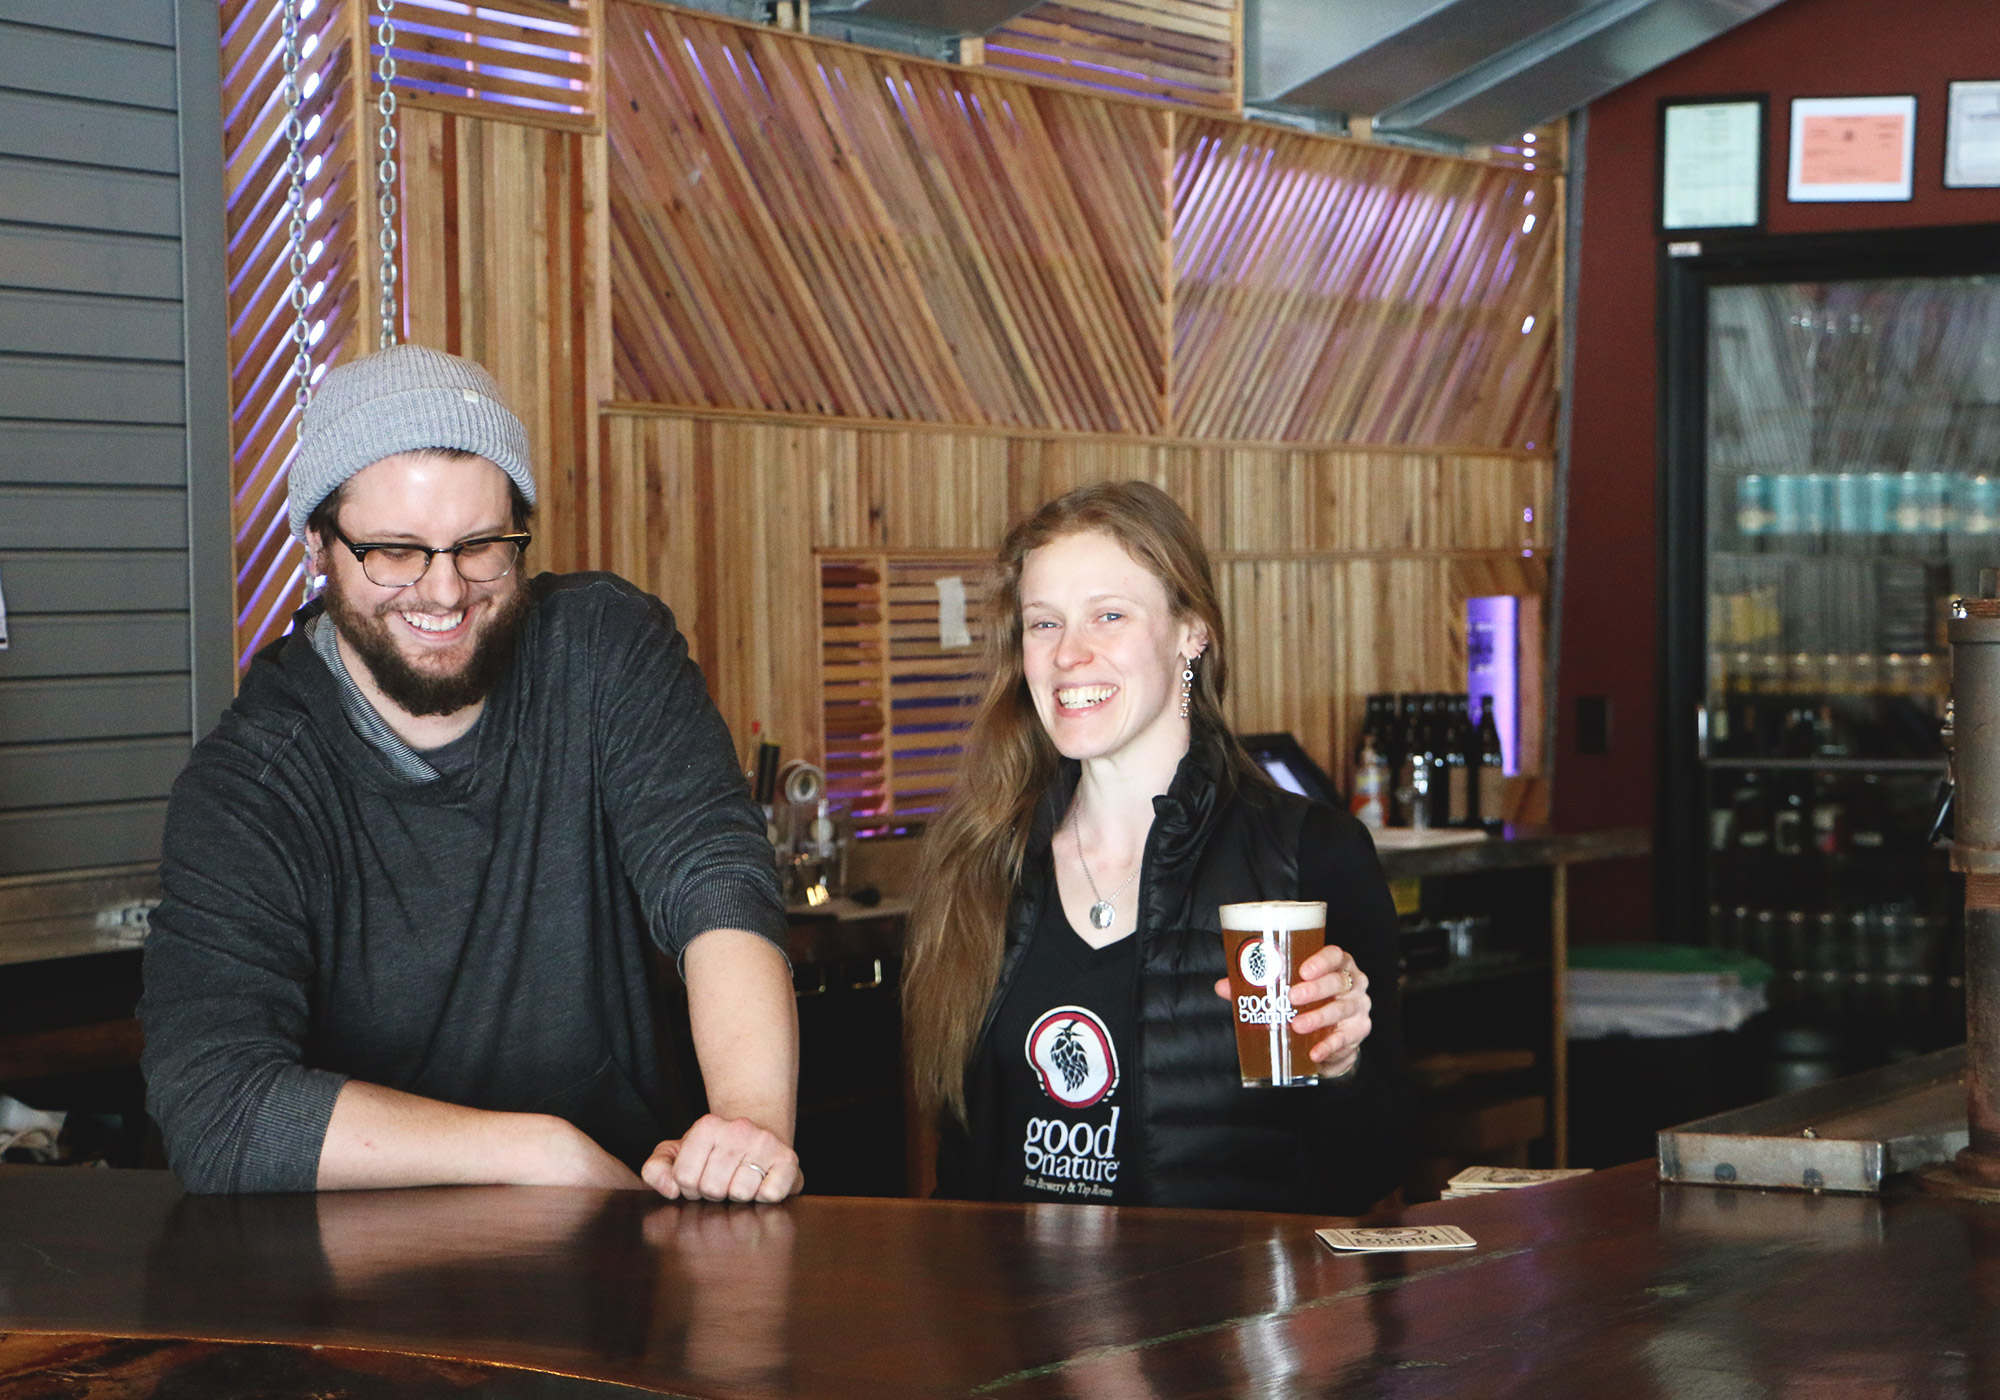 Passion & Persistence: NY's Good Nature Farm Brewing